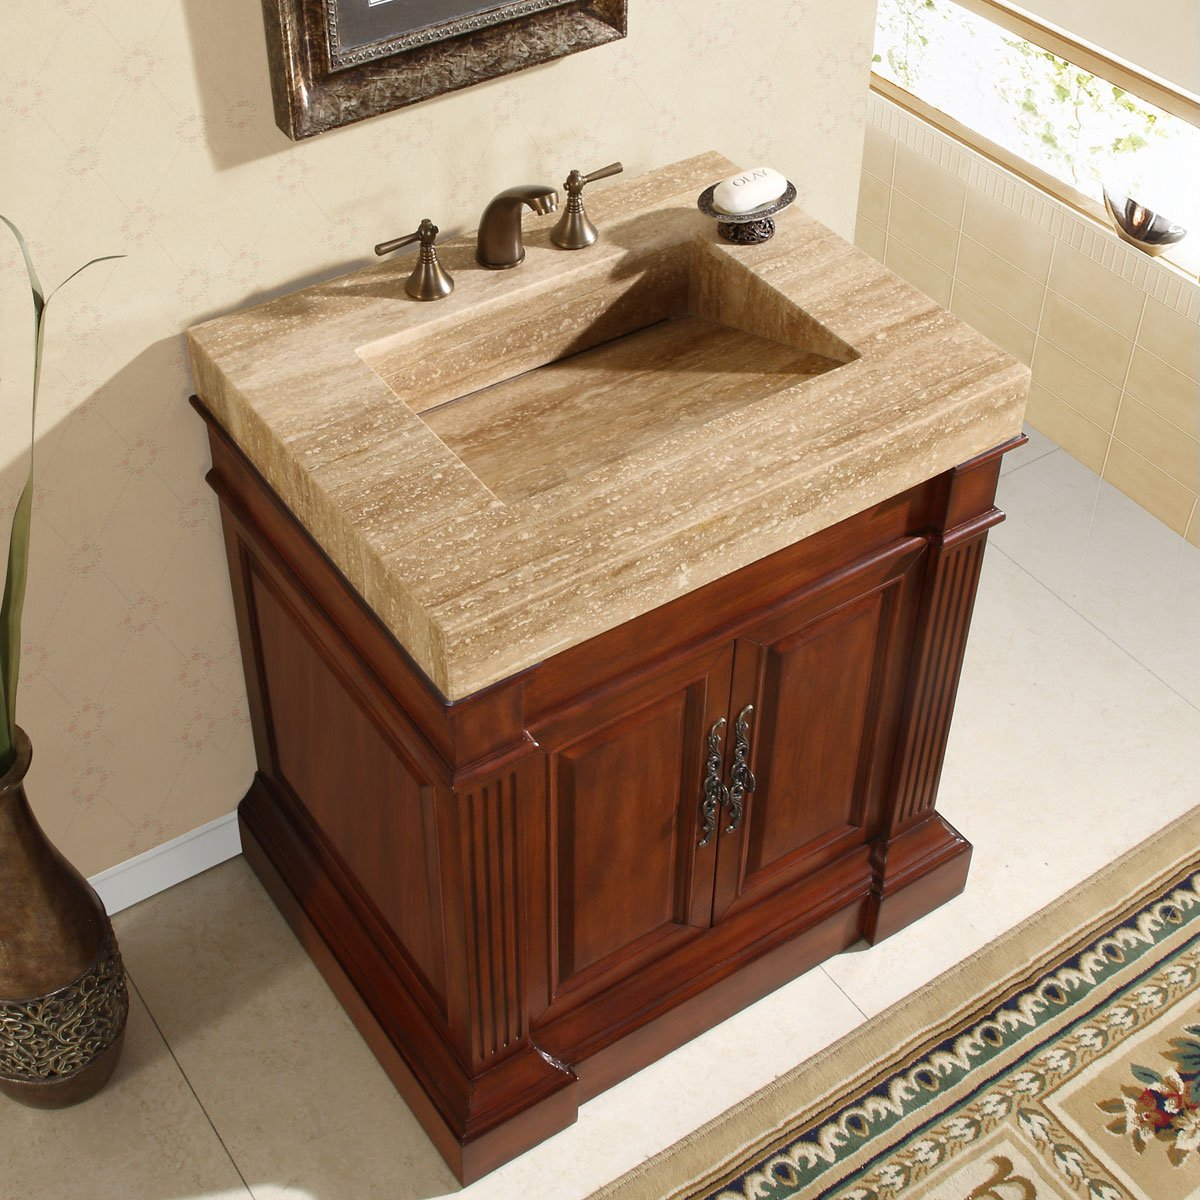 Amazon.com: Silkroad Exclusive Travertine Stone Single Ramp Sink Bathroom  Vanity With Bath Furniture Cabinet, 32.5 Inch: Home U0026 Kitchen